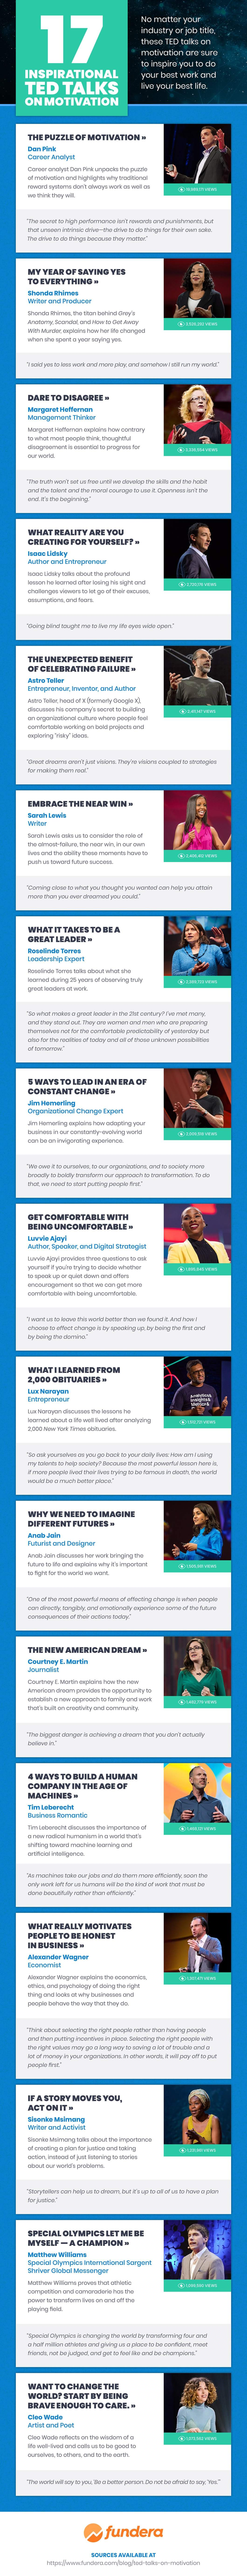 How to Stay Motivated: 17 Inspirational TED Talks - Infographic